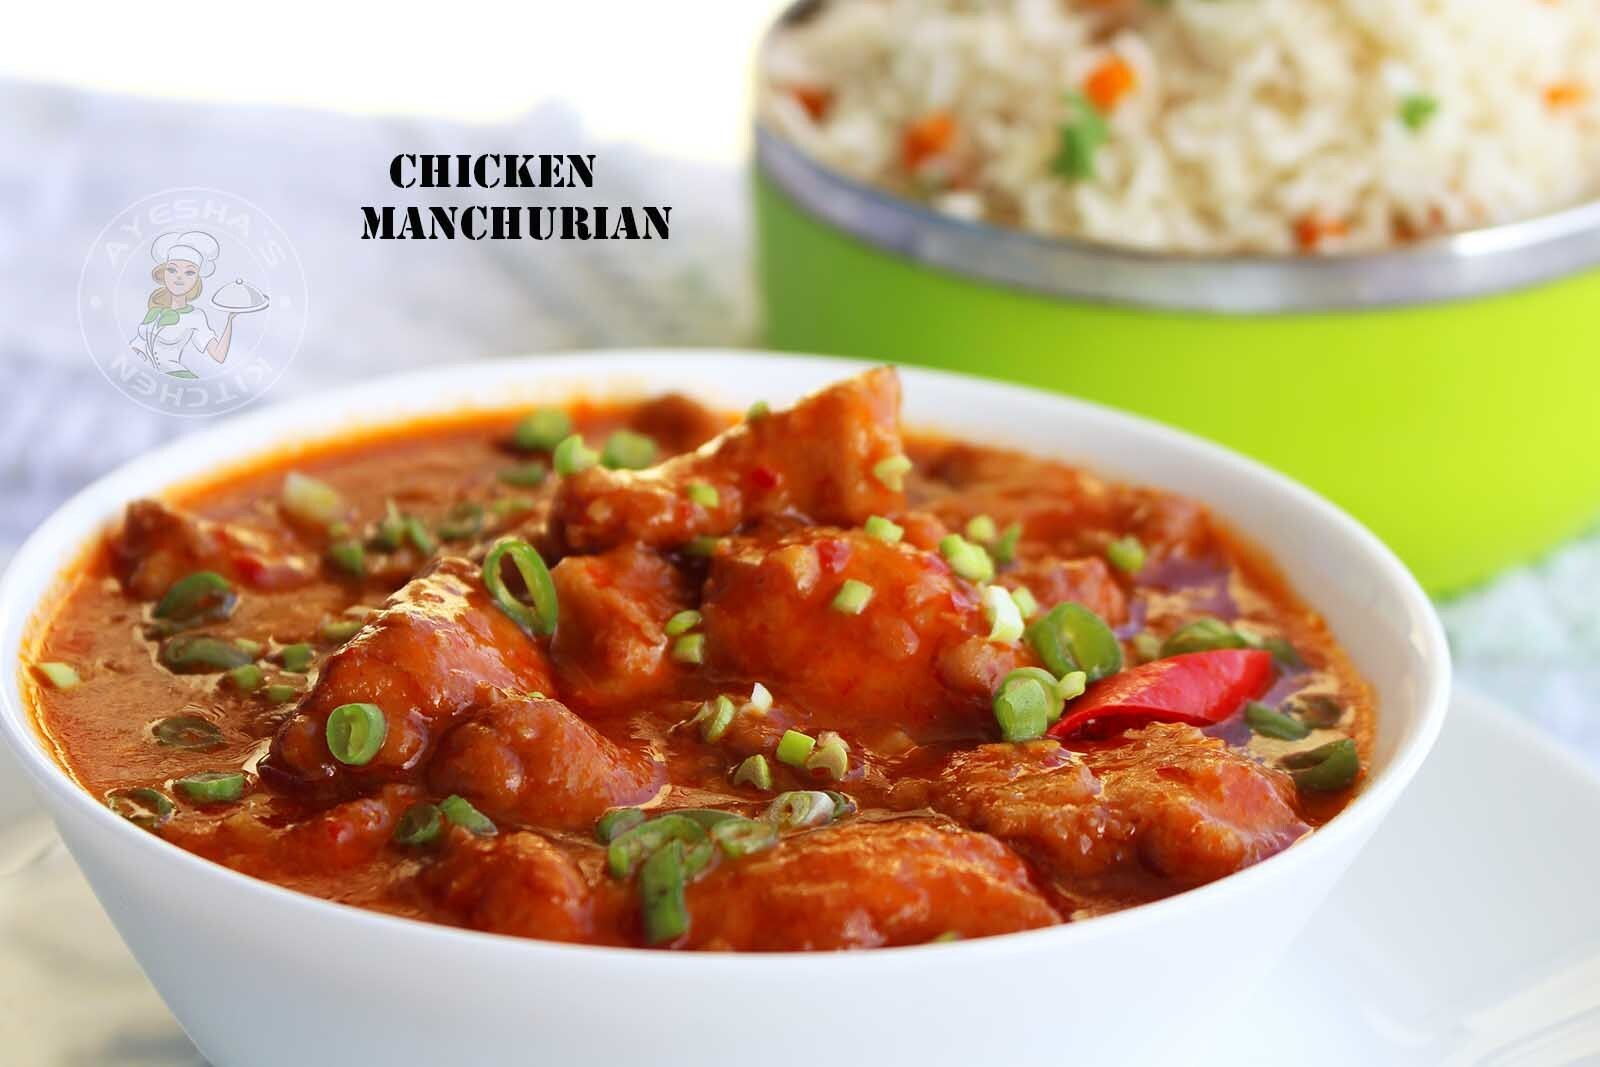 CHICKEN MANCHURIAN RECIPE - YUMMY CHICKEN DISH